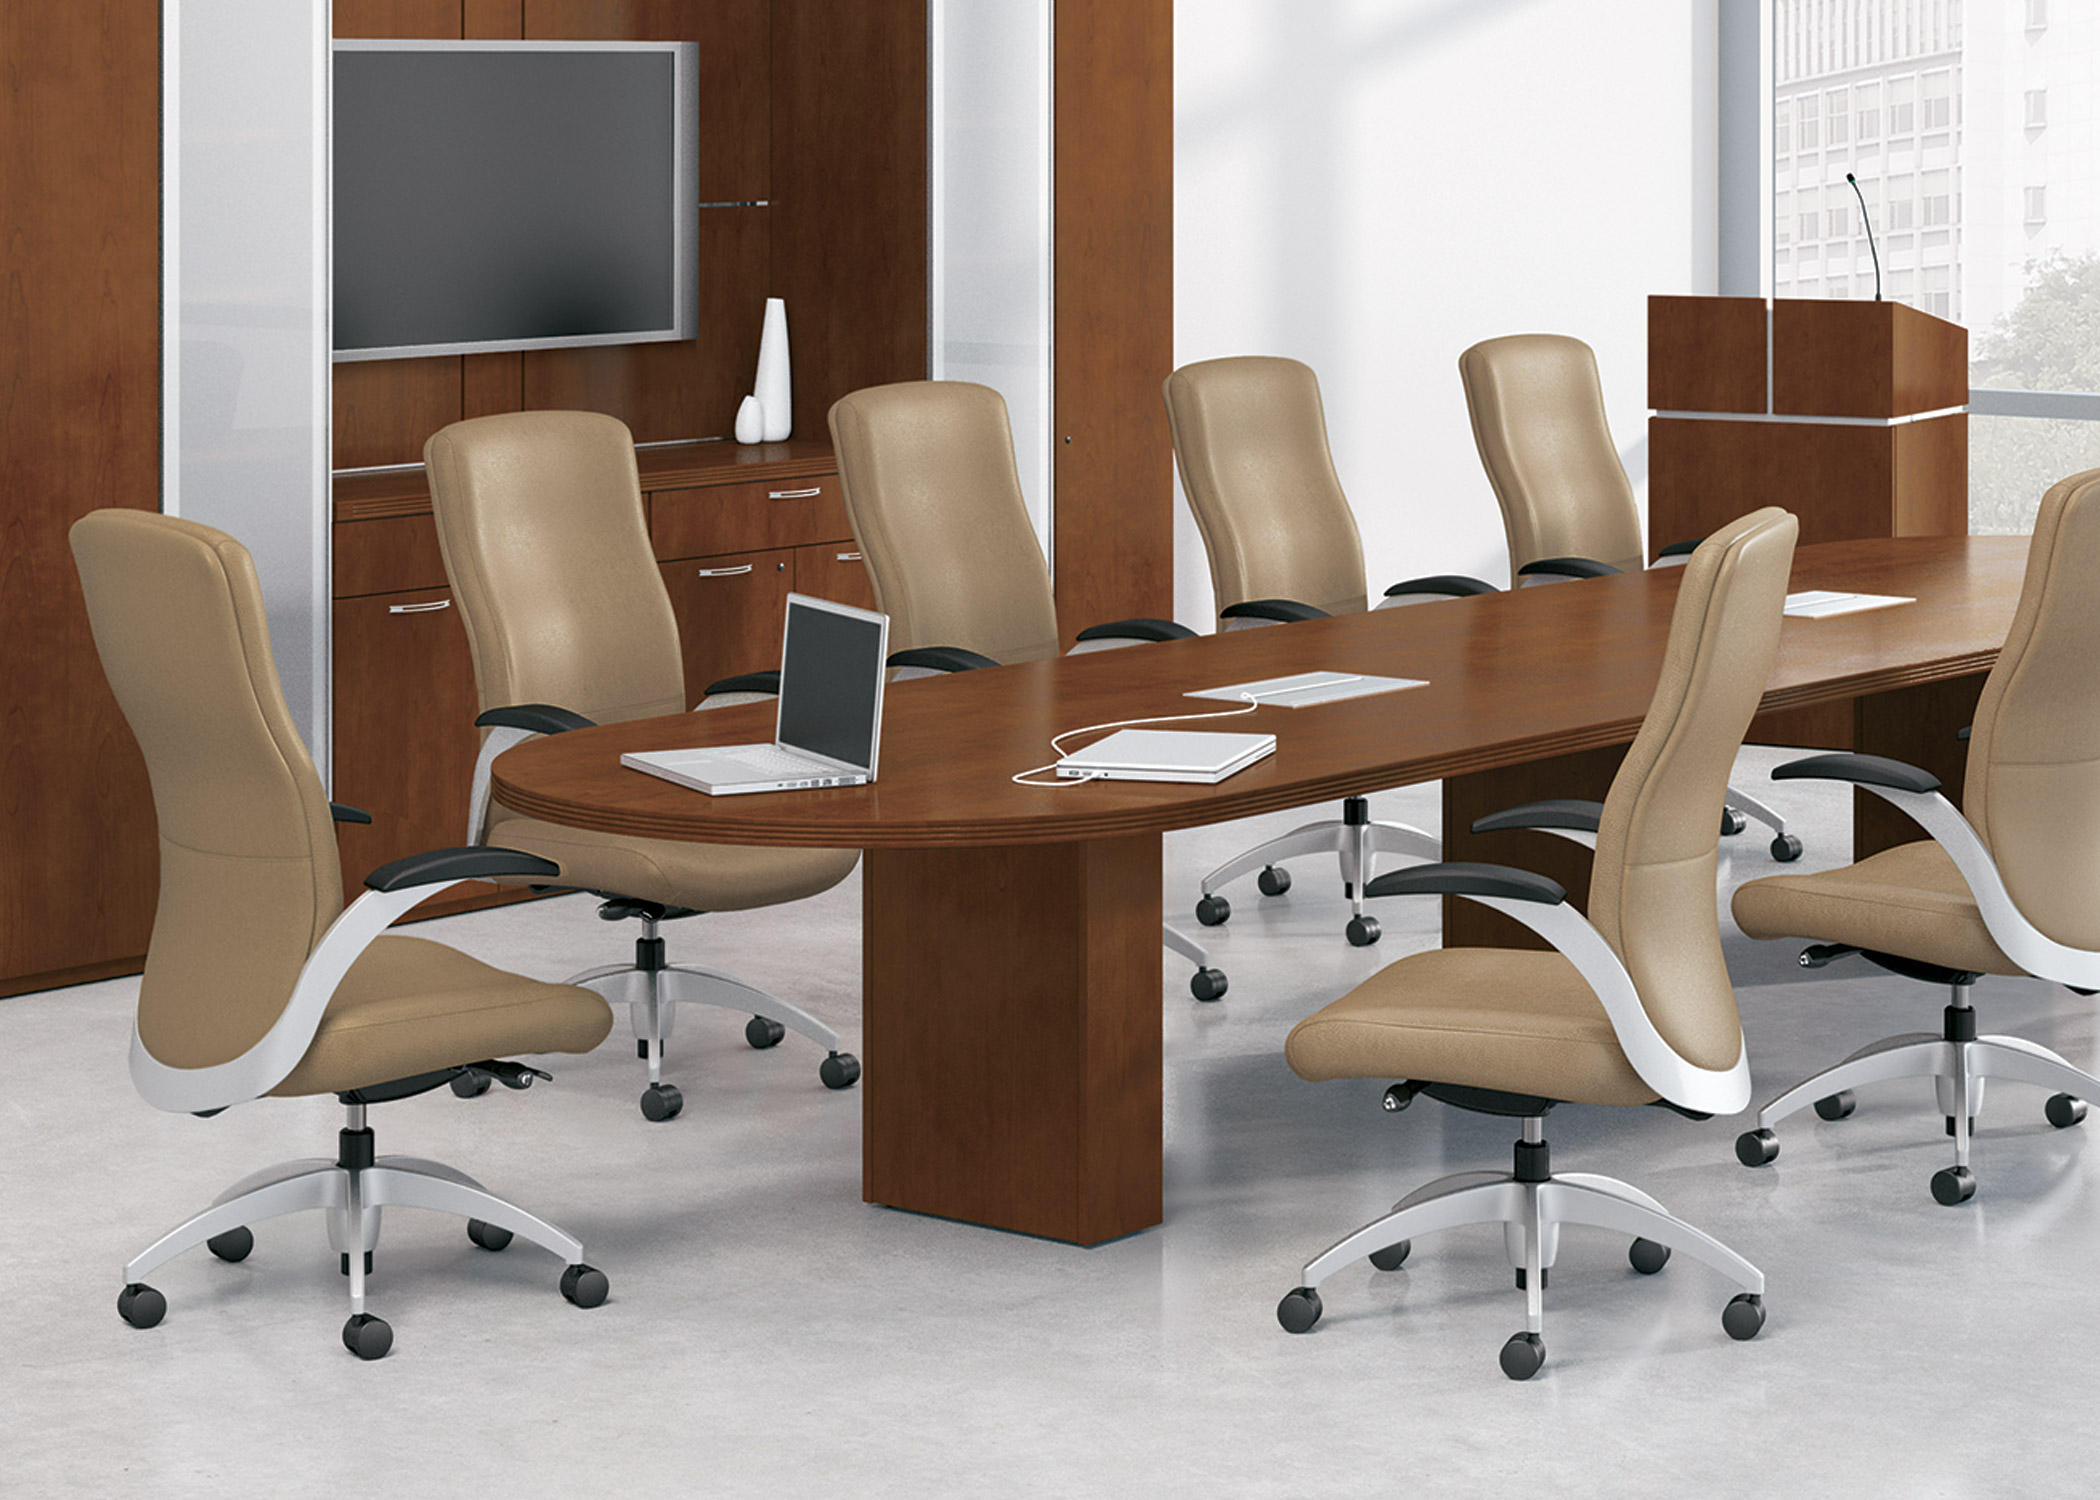 AURORA DESK - HIGH BACK - Management chairs from National Office ...